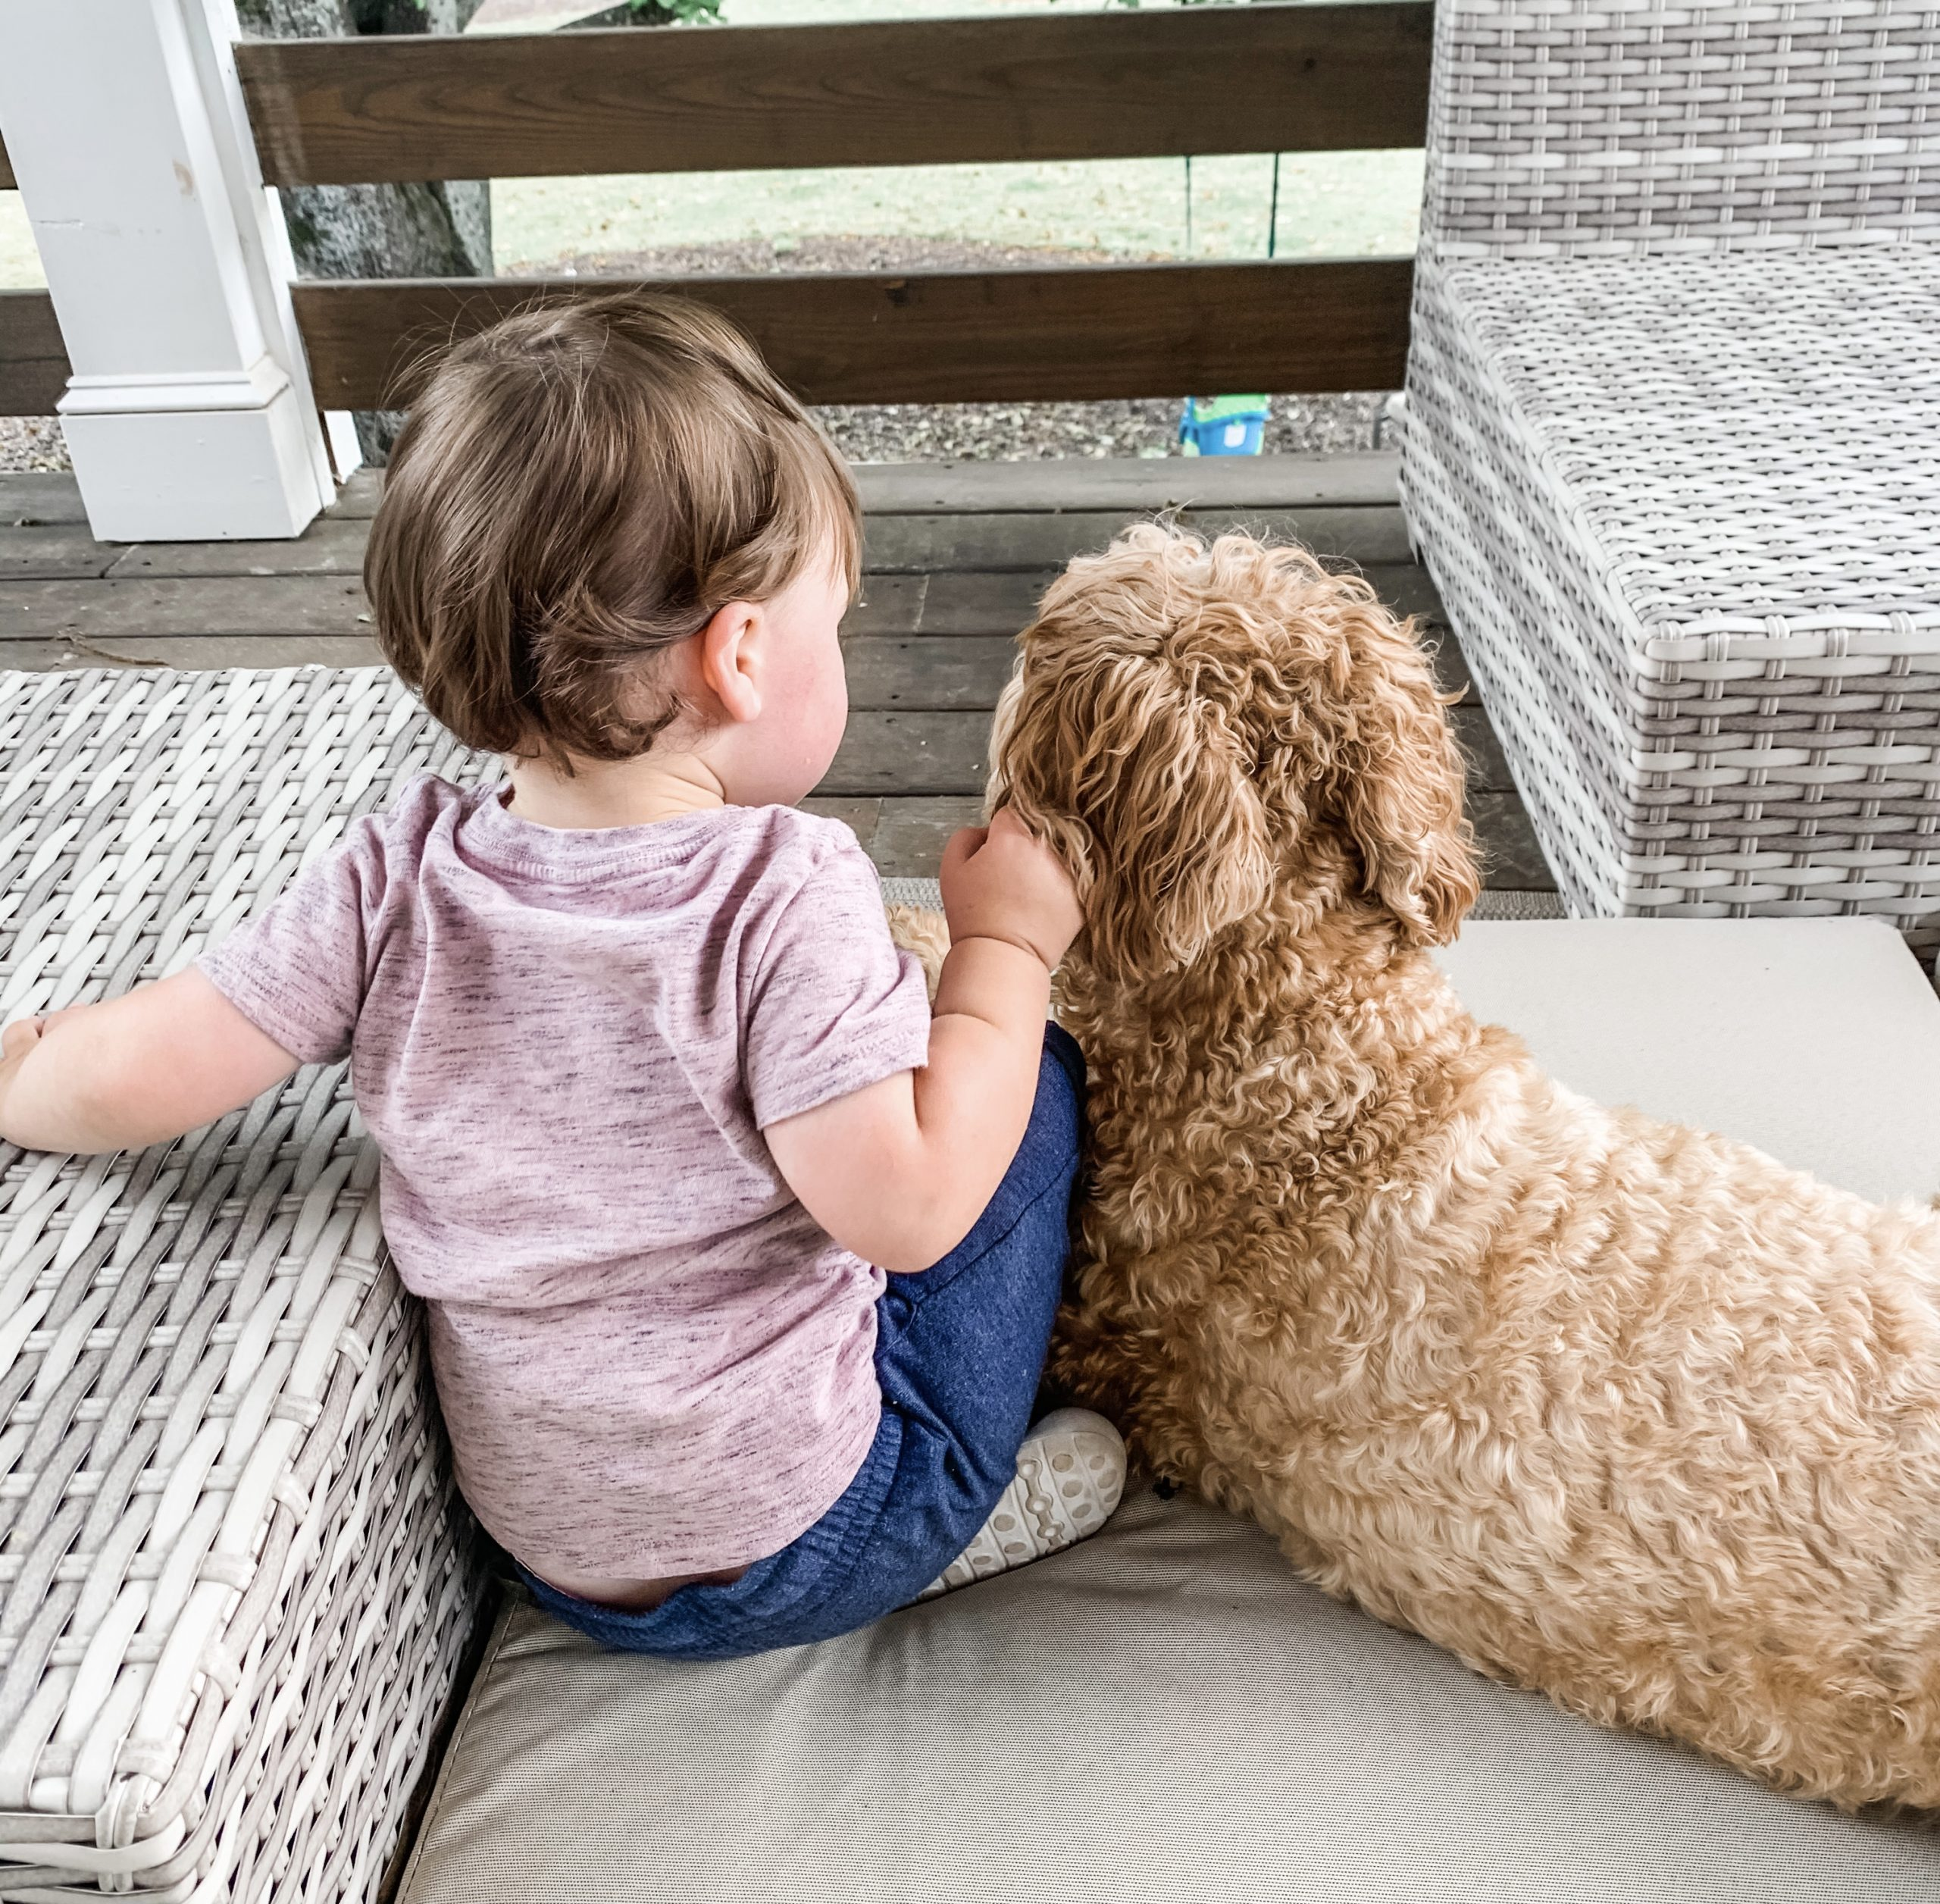 My toddler and one of our dogs.